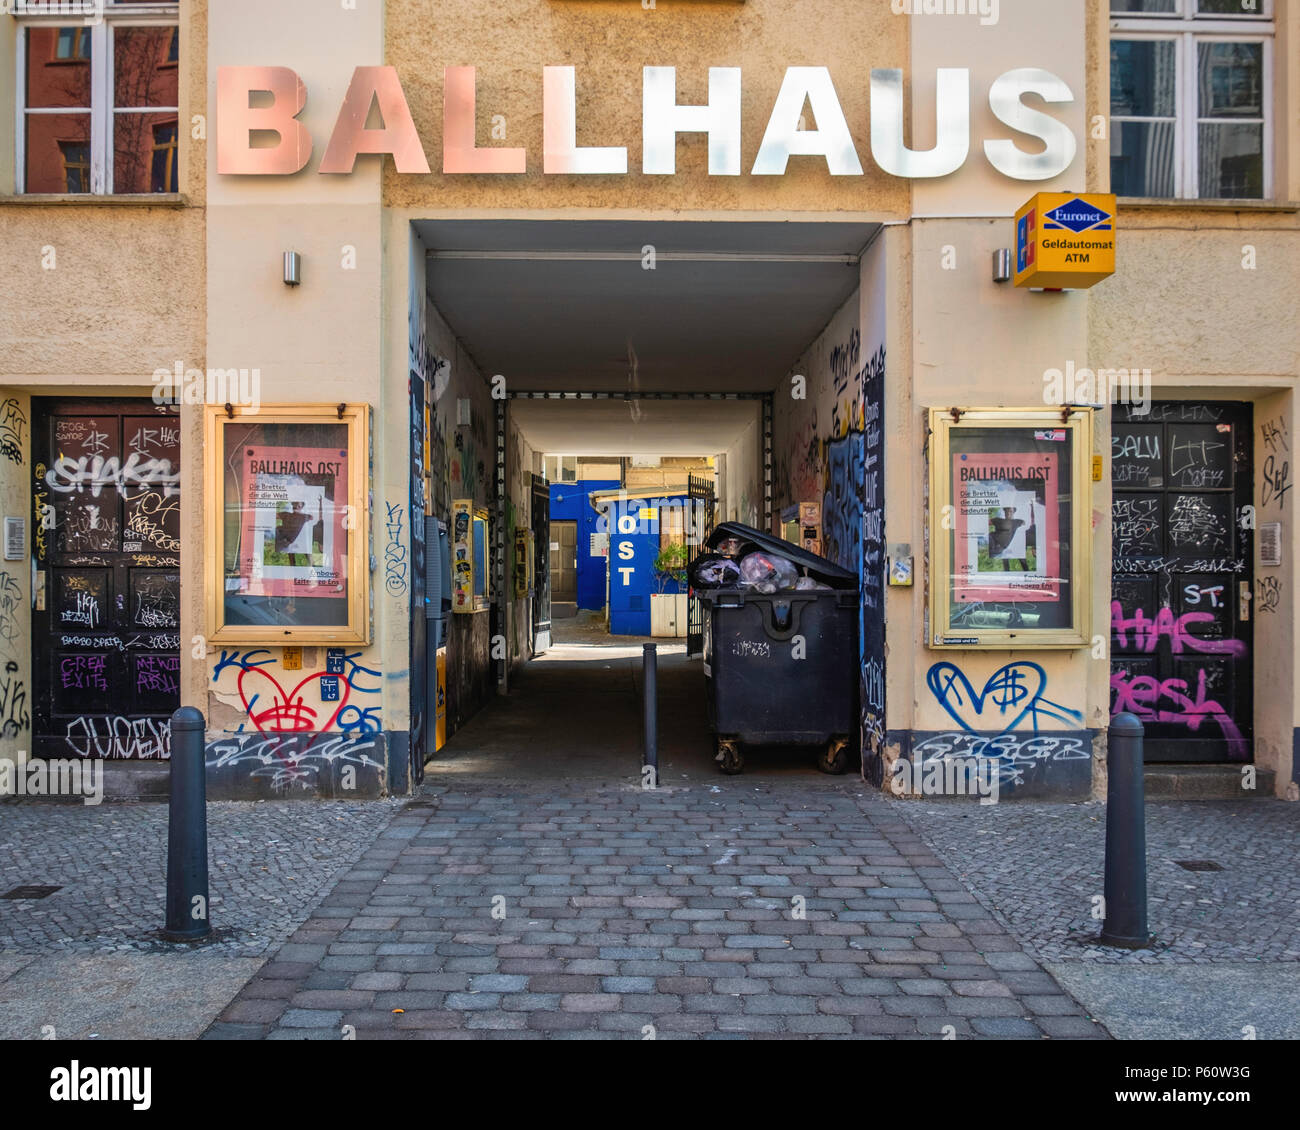 Berlin Prenzlauer Berg,Ballhaus Ost venue for entertainment, theatre & art projects,displays,exhibitions - Stock Image